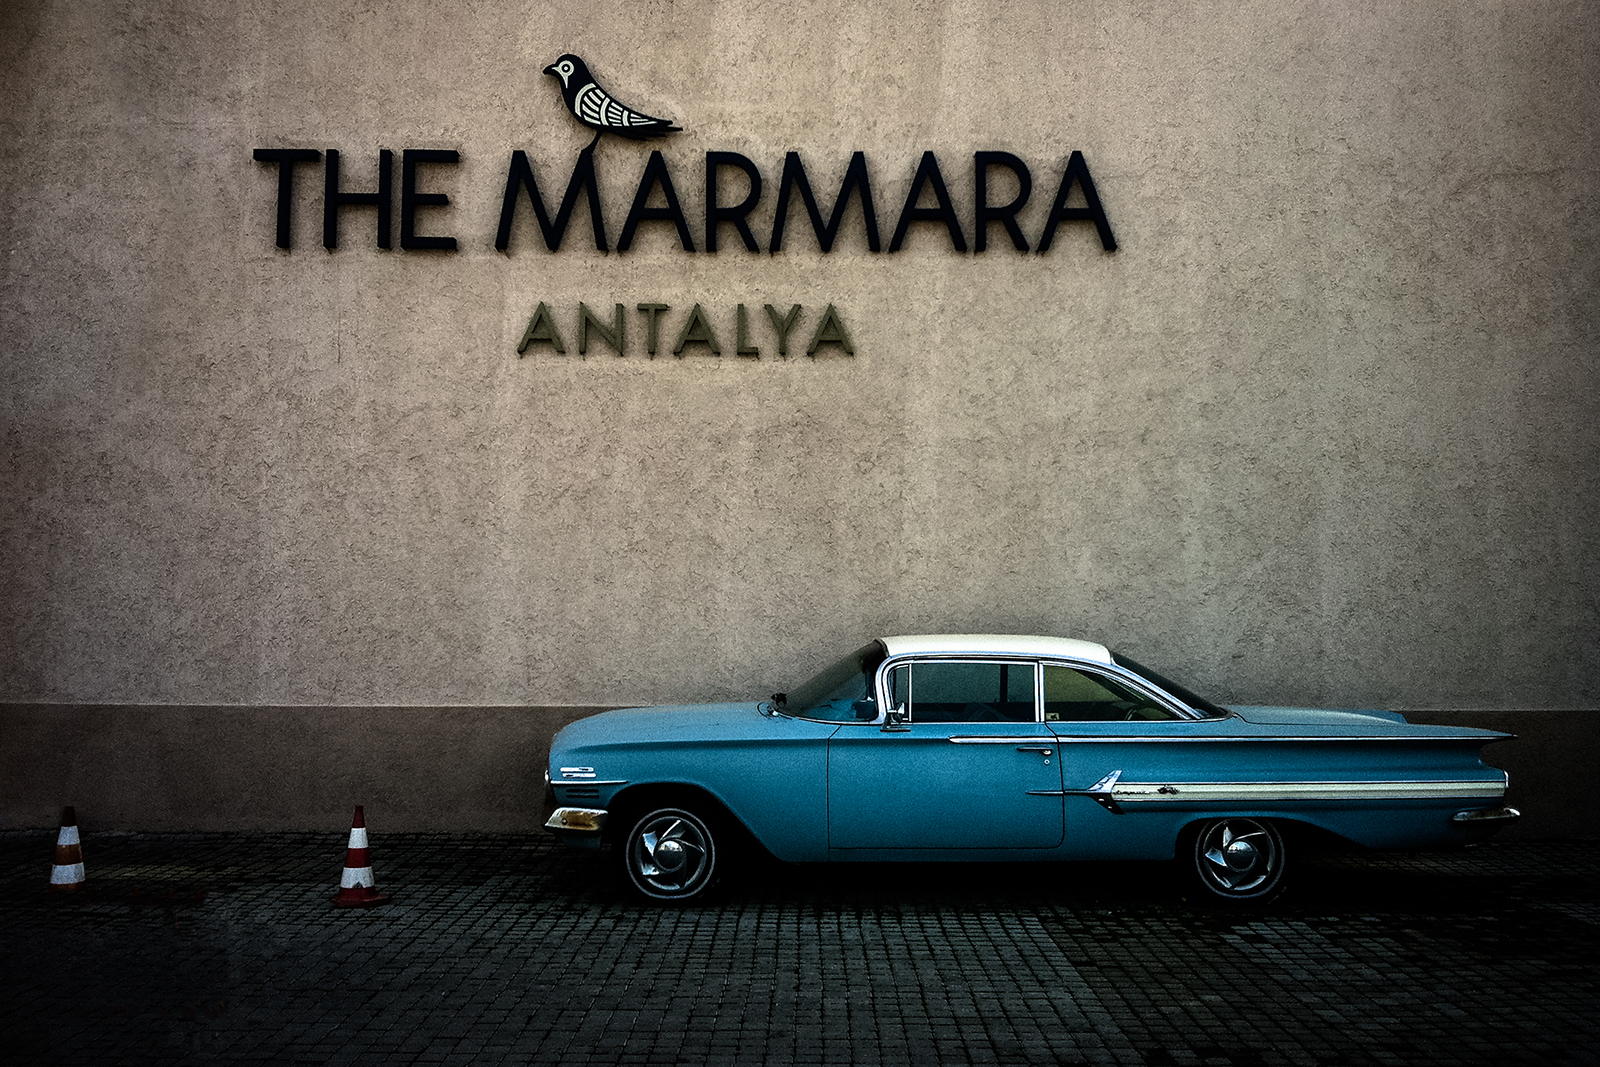 A photo of a classic car outside The Marmara hotel in Antalya.